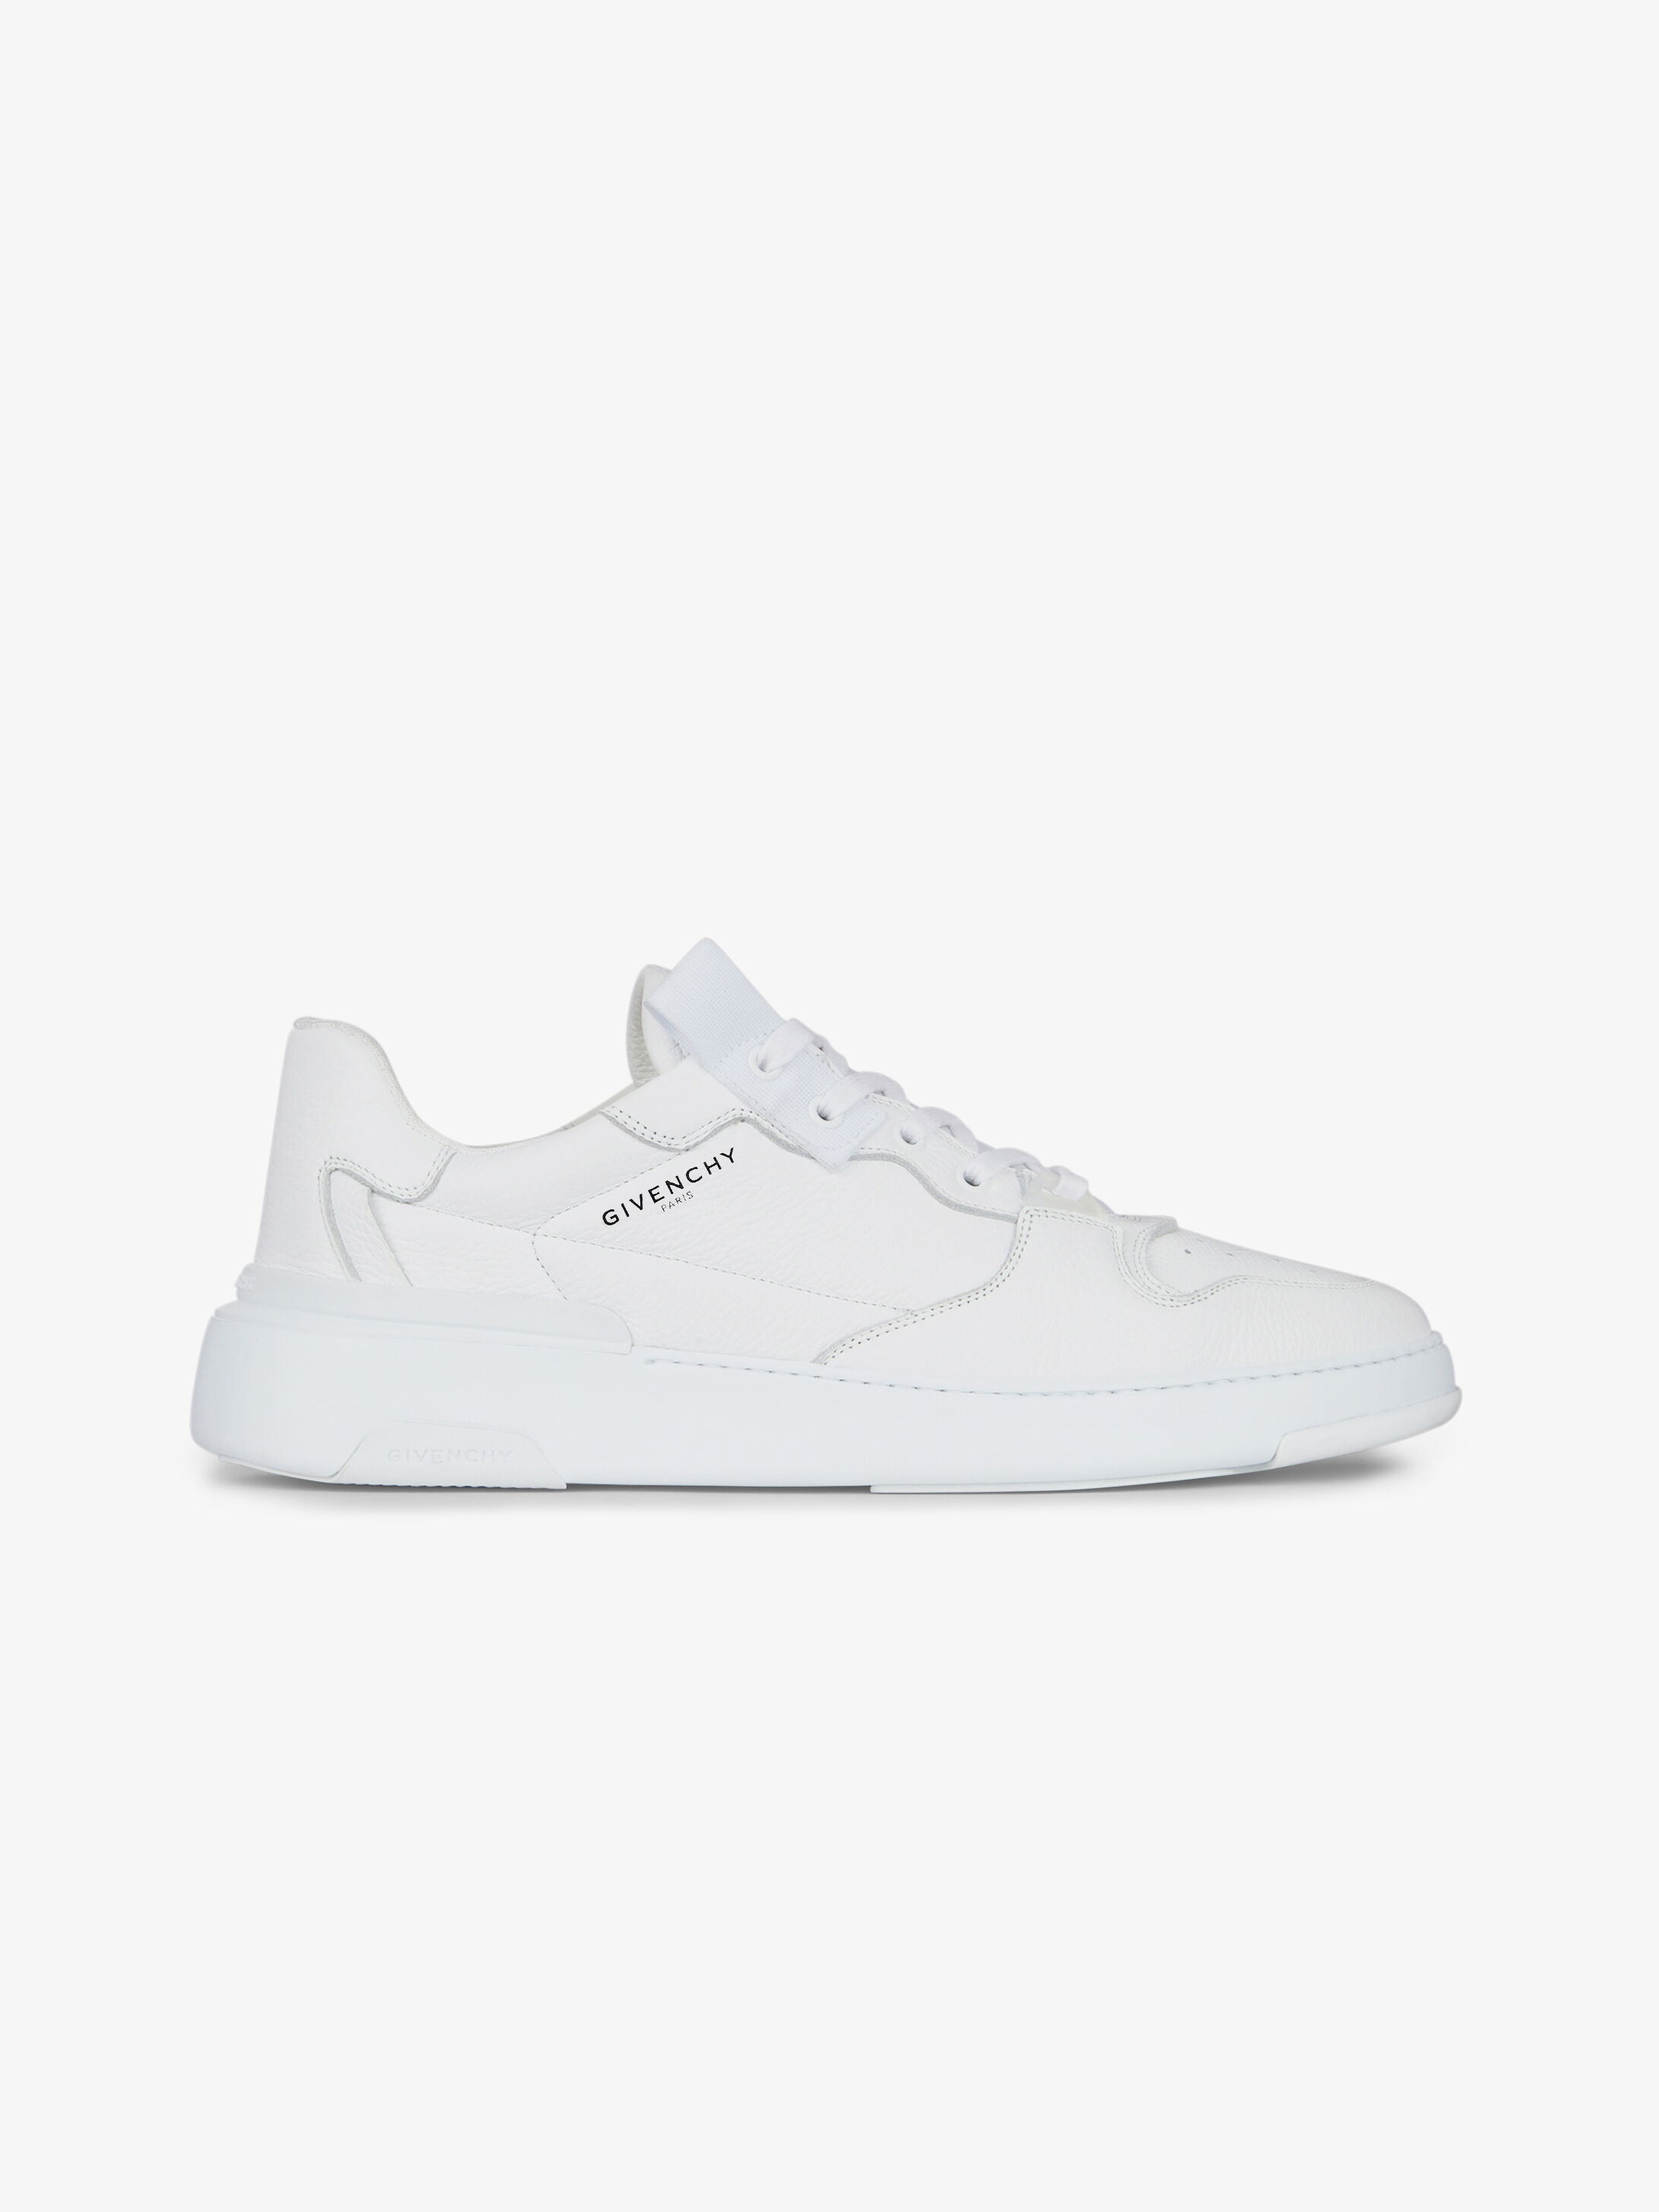 Wing low sneakers in leather | GIVENCHY